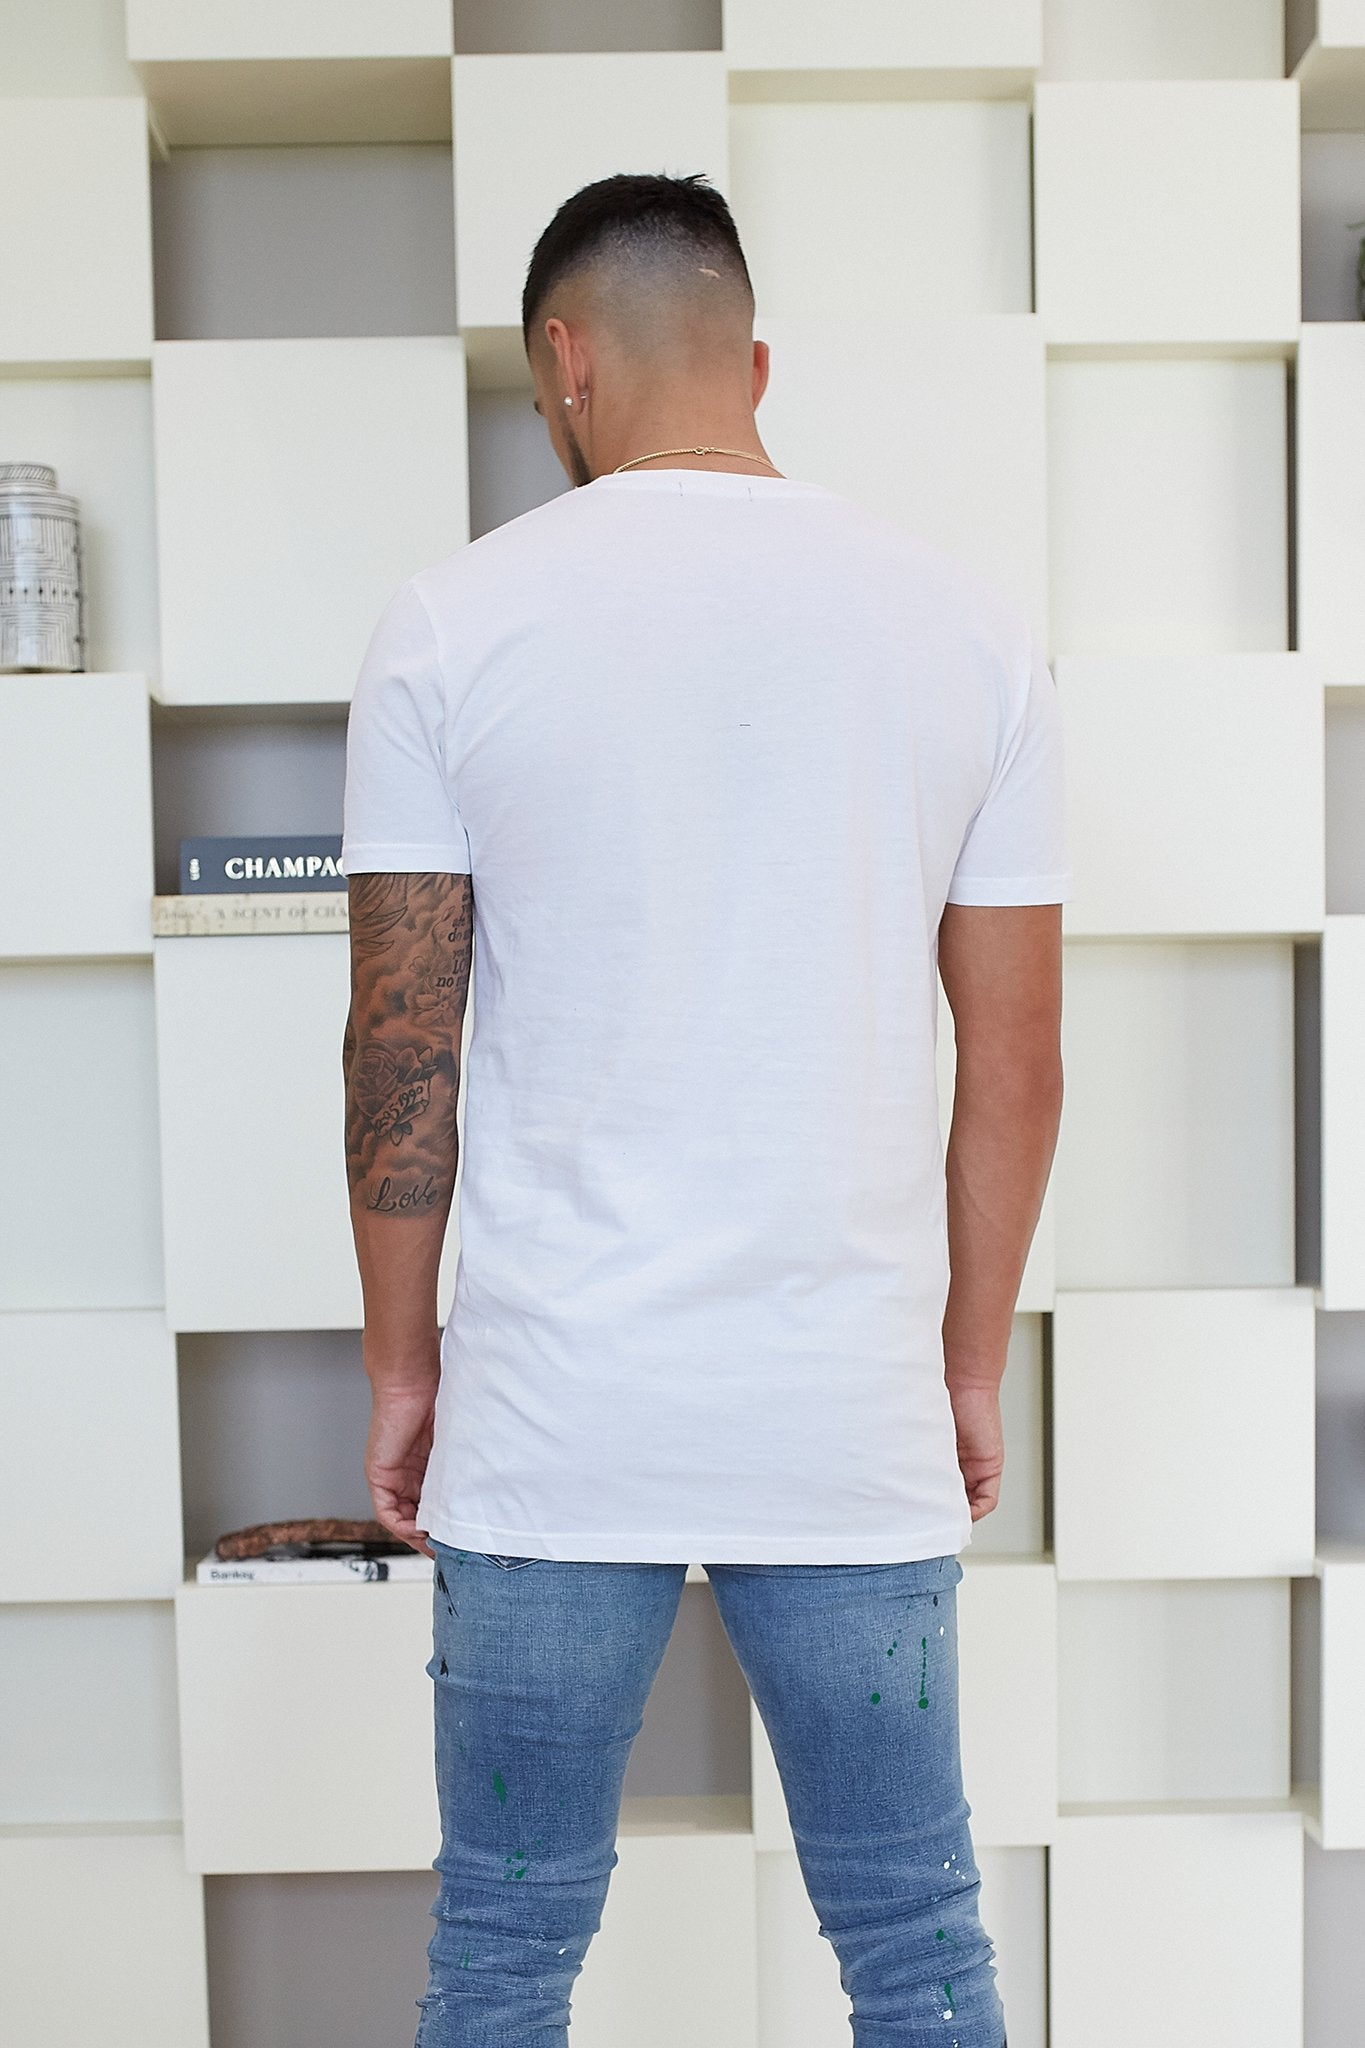 WHITE GOTHIC T-SHIRT - Illusion Attire